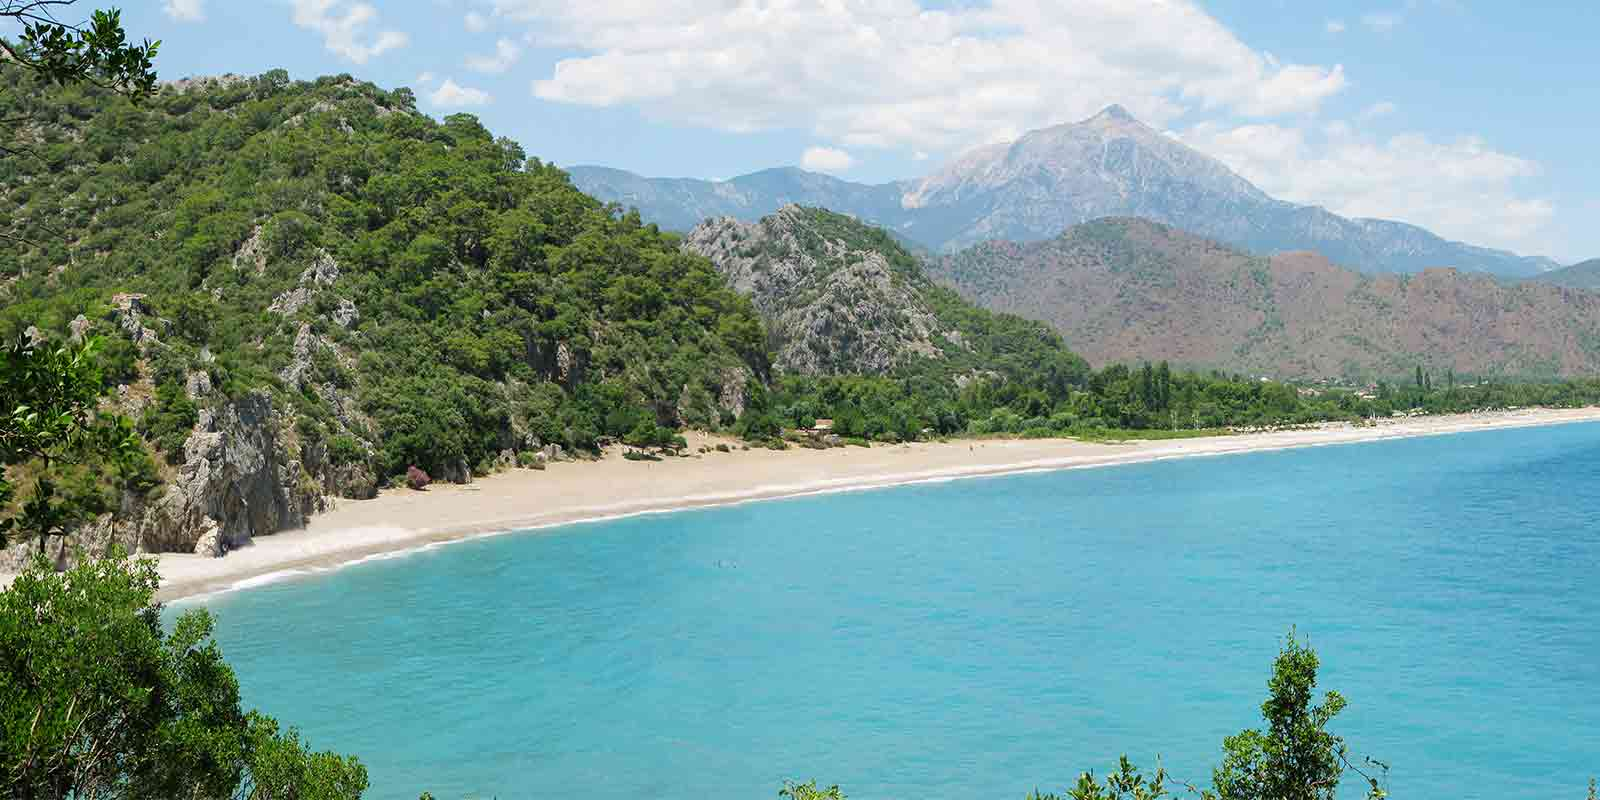 View of Olympos beach on the Turquoise Coast of Turkey